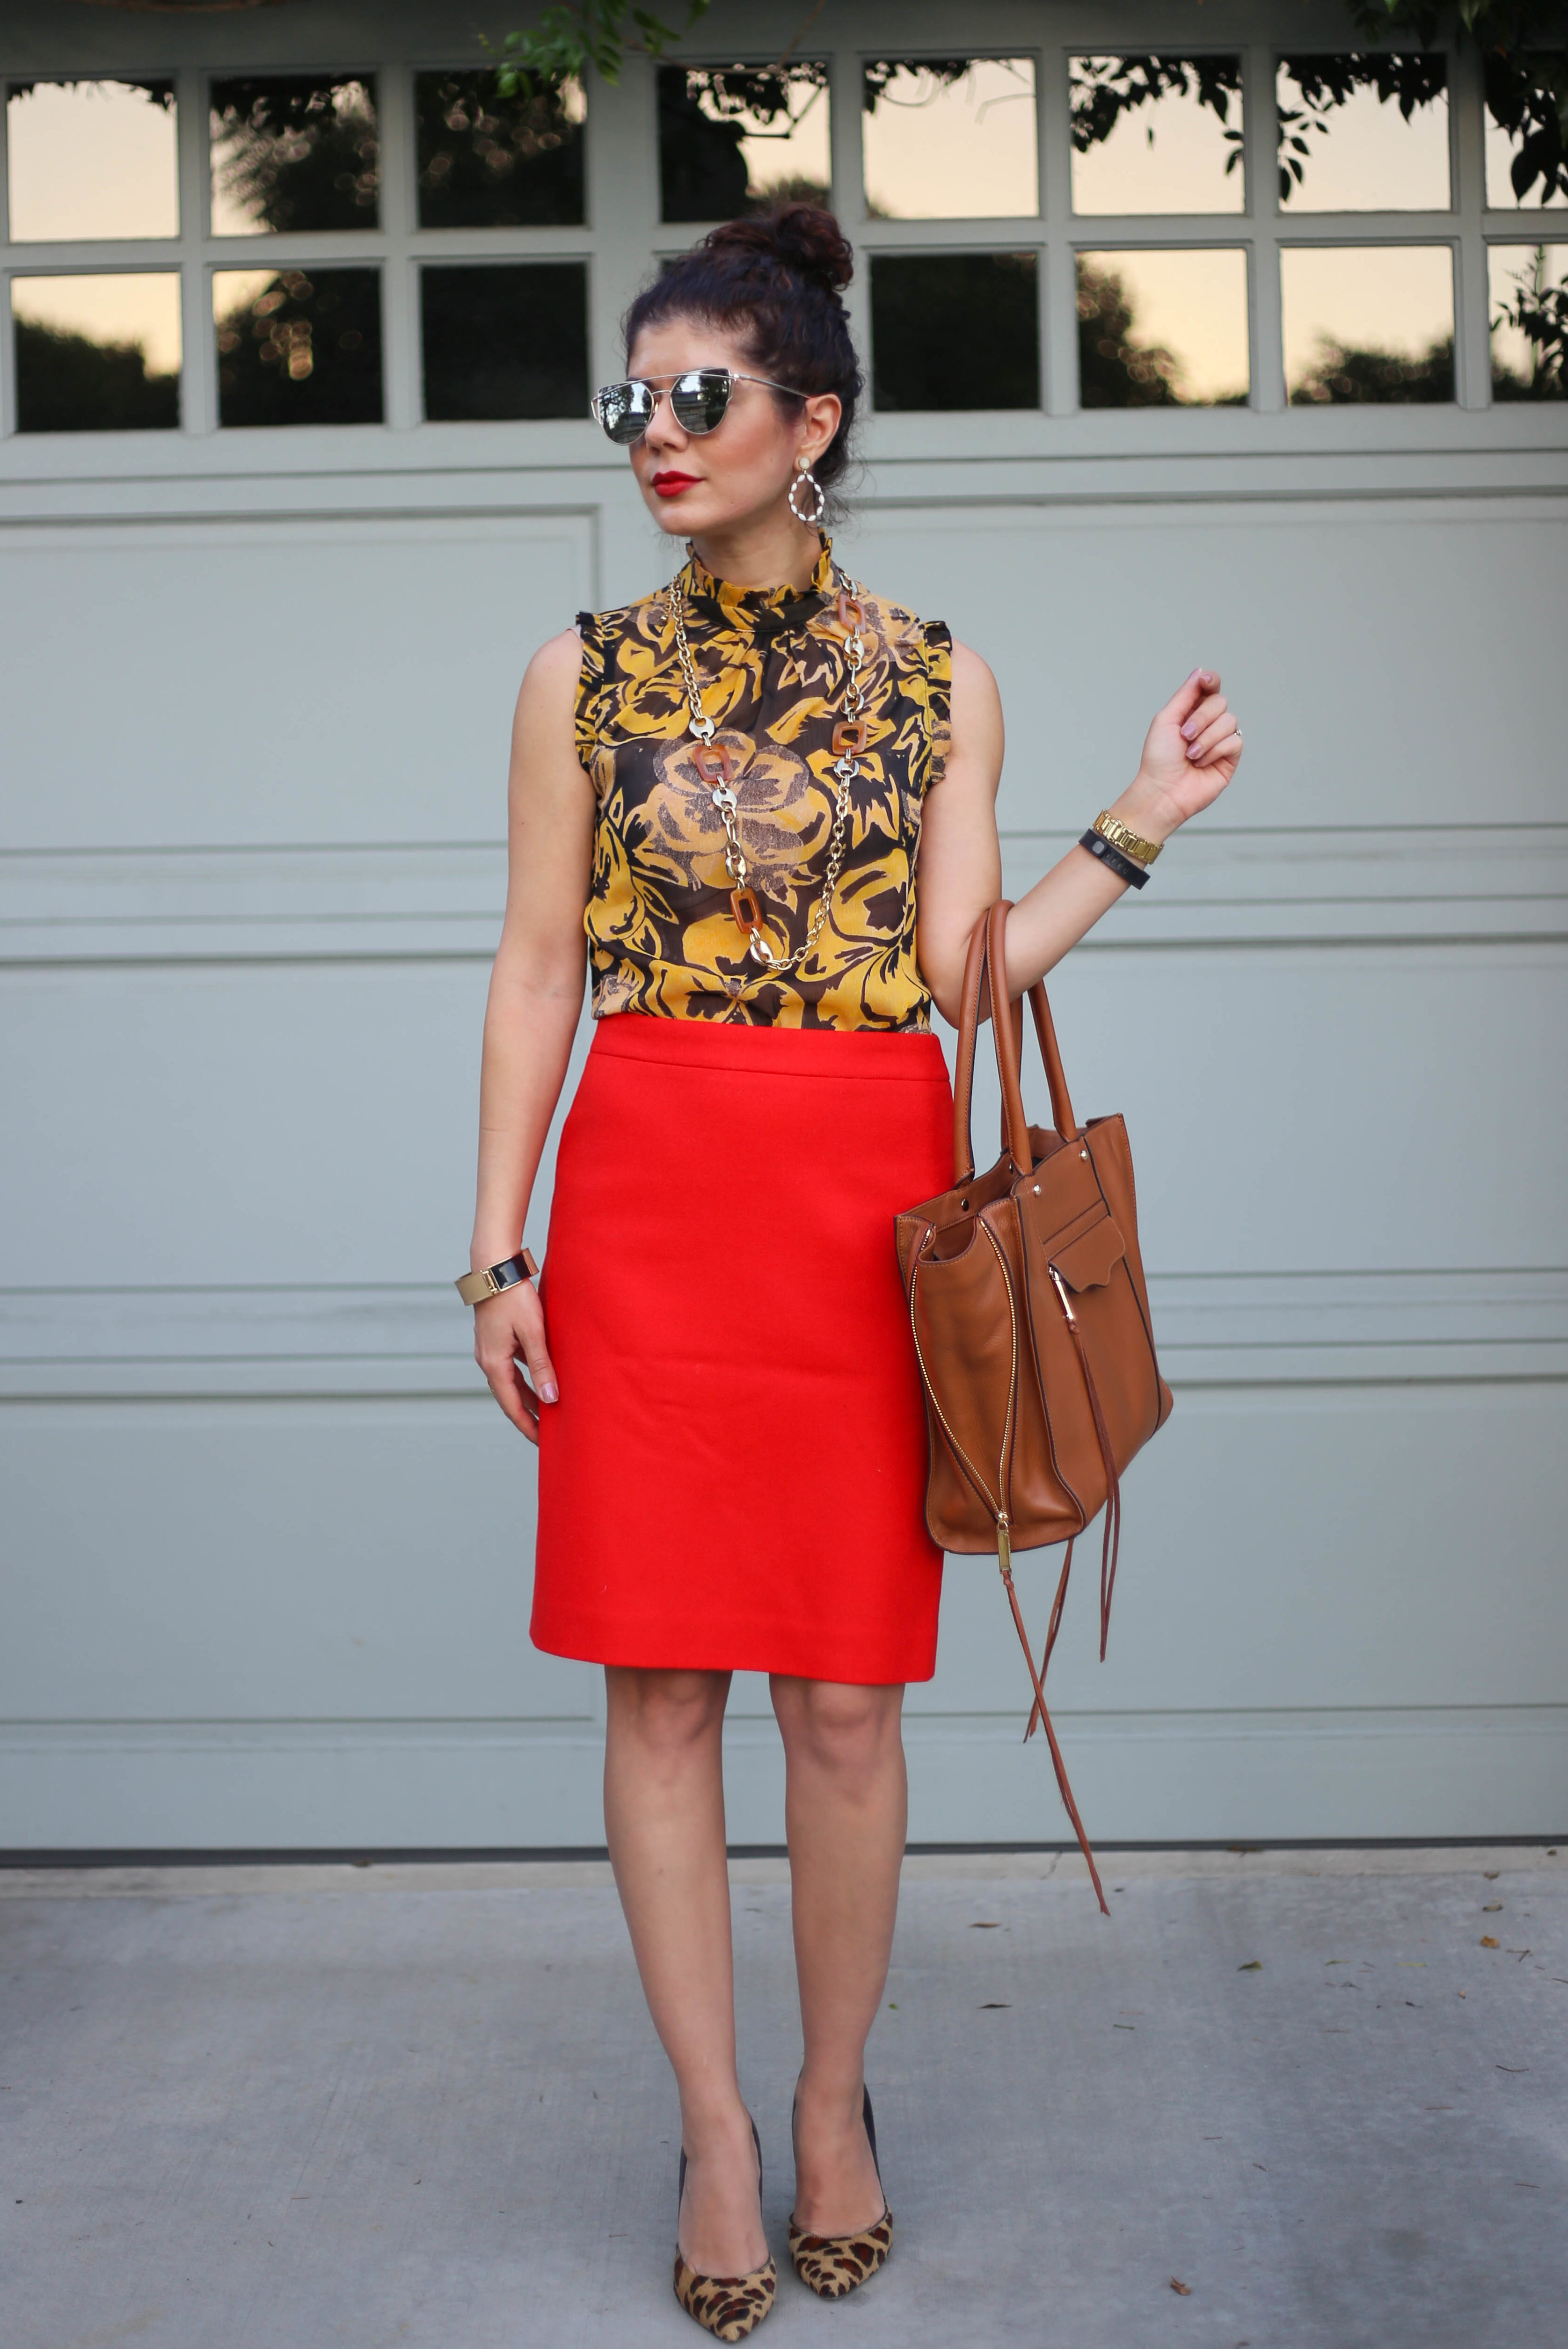 Mustard Yellow And Red A Fool Proof Fall Outfit Color Combination